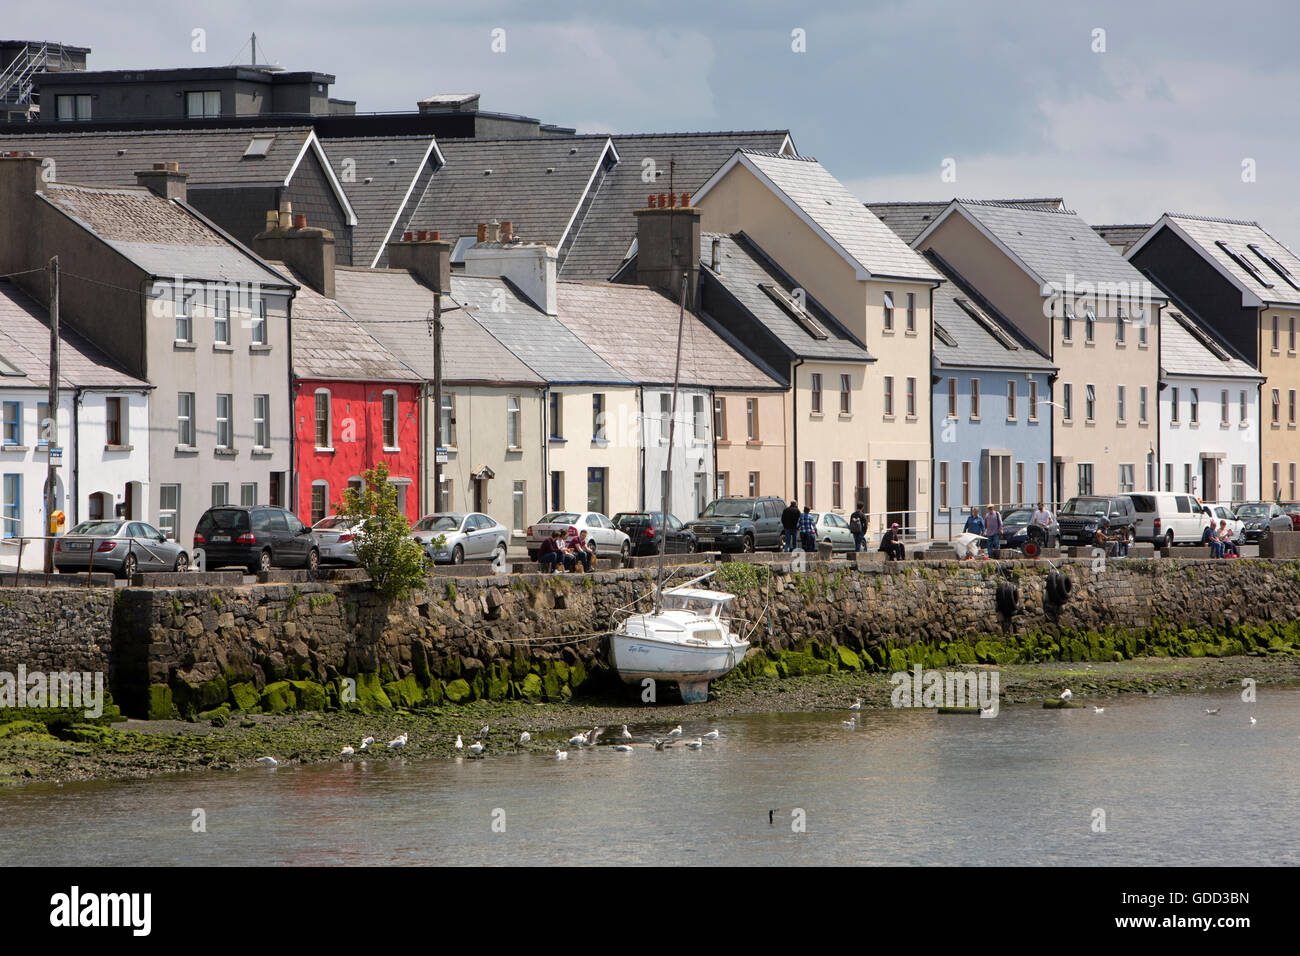 Ireland, Co Galway, Galway, boat beside colourfully painted Long Walk houses at low tide - Stock Image